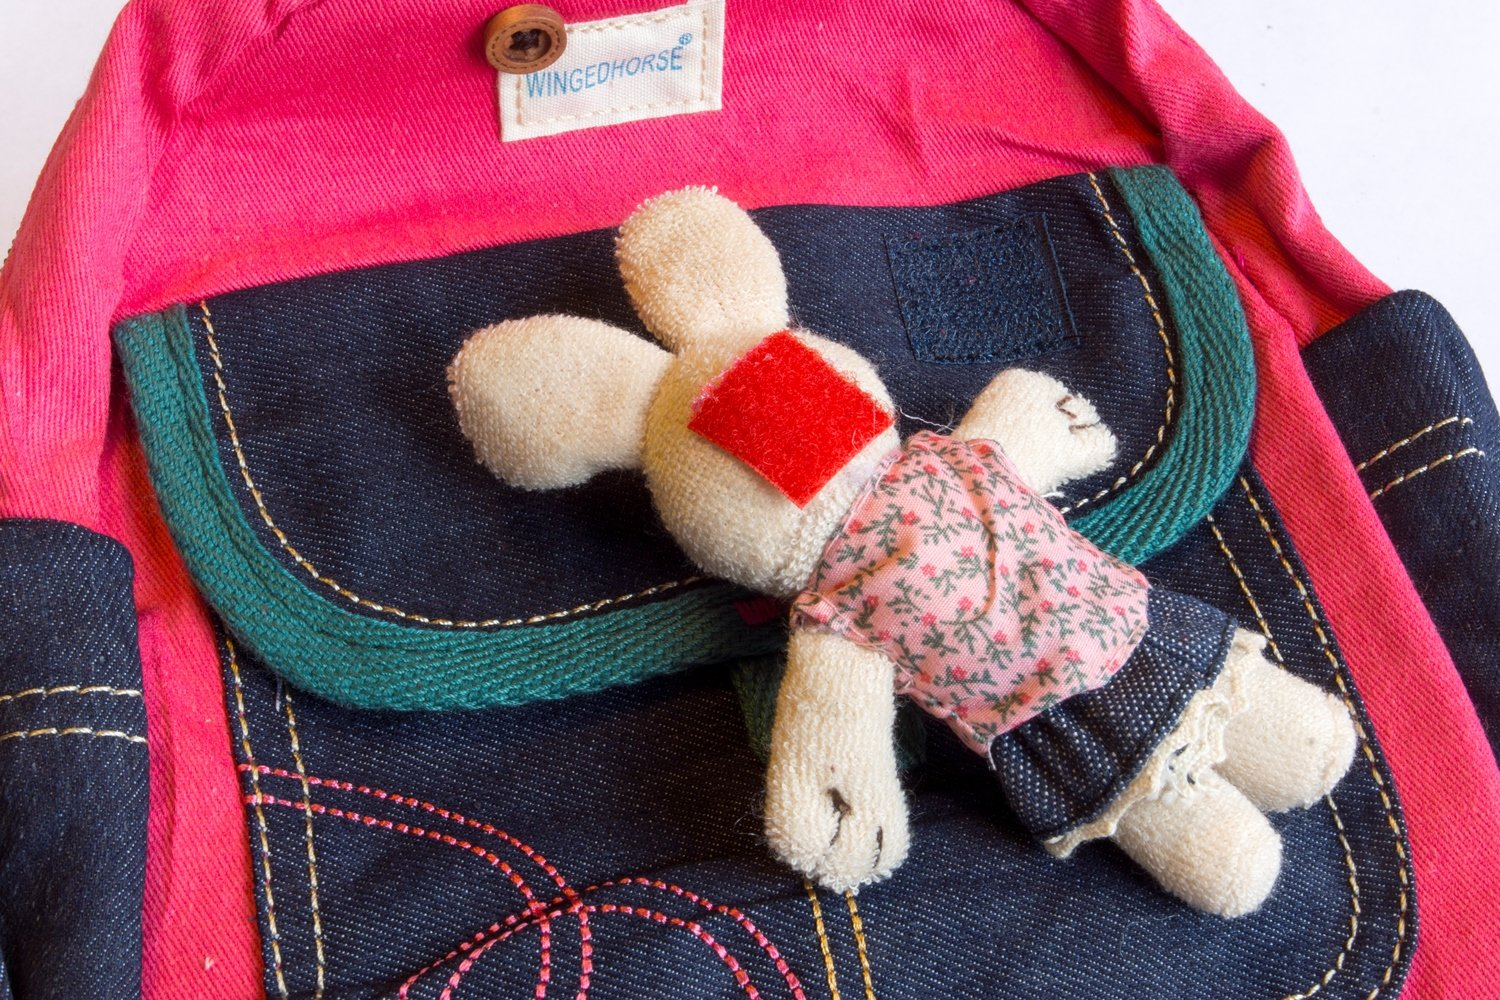 Kid Toddler Walking Safety Harness with Cute Teddy Bear/Bunny Backpack - Sold and Ship From USA (Pink Bunny)